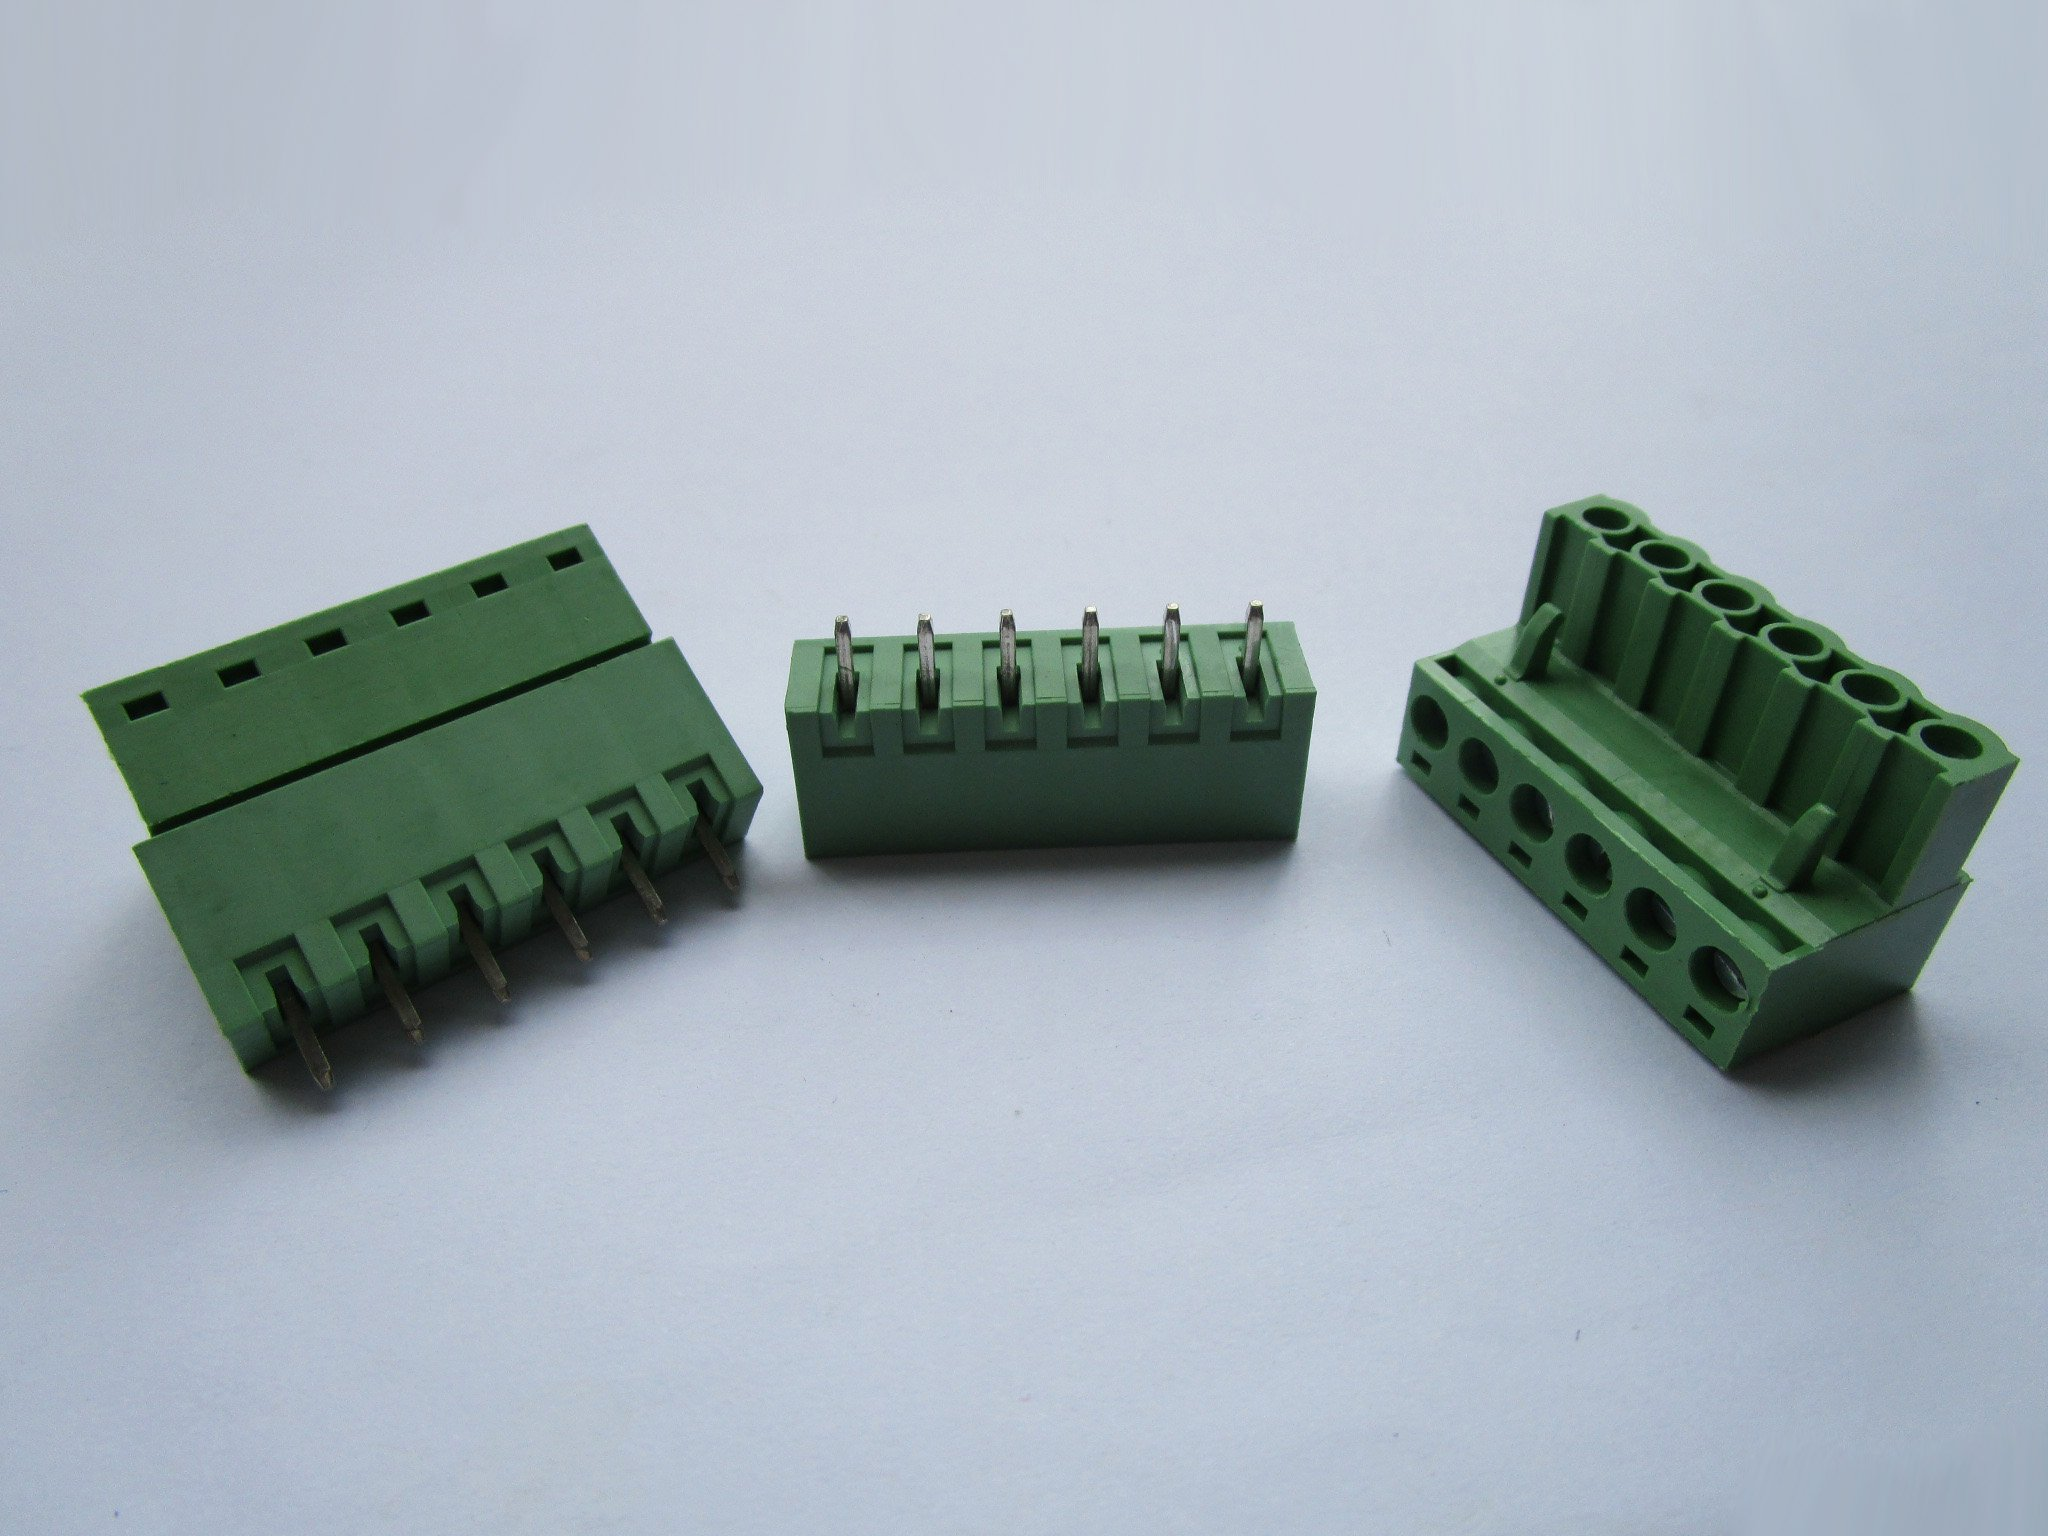 150 Pcs Close Straight 6 Pin/way Pitch 5.08mm Screw Terminal Block Connector Green Color Pluggable Type with Straight Pin